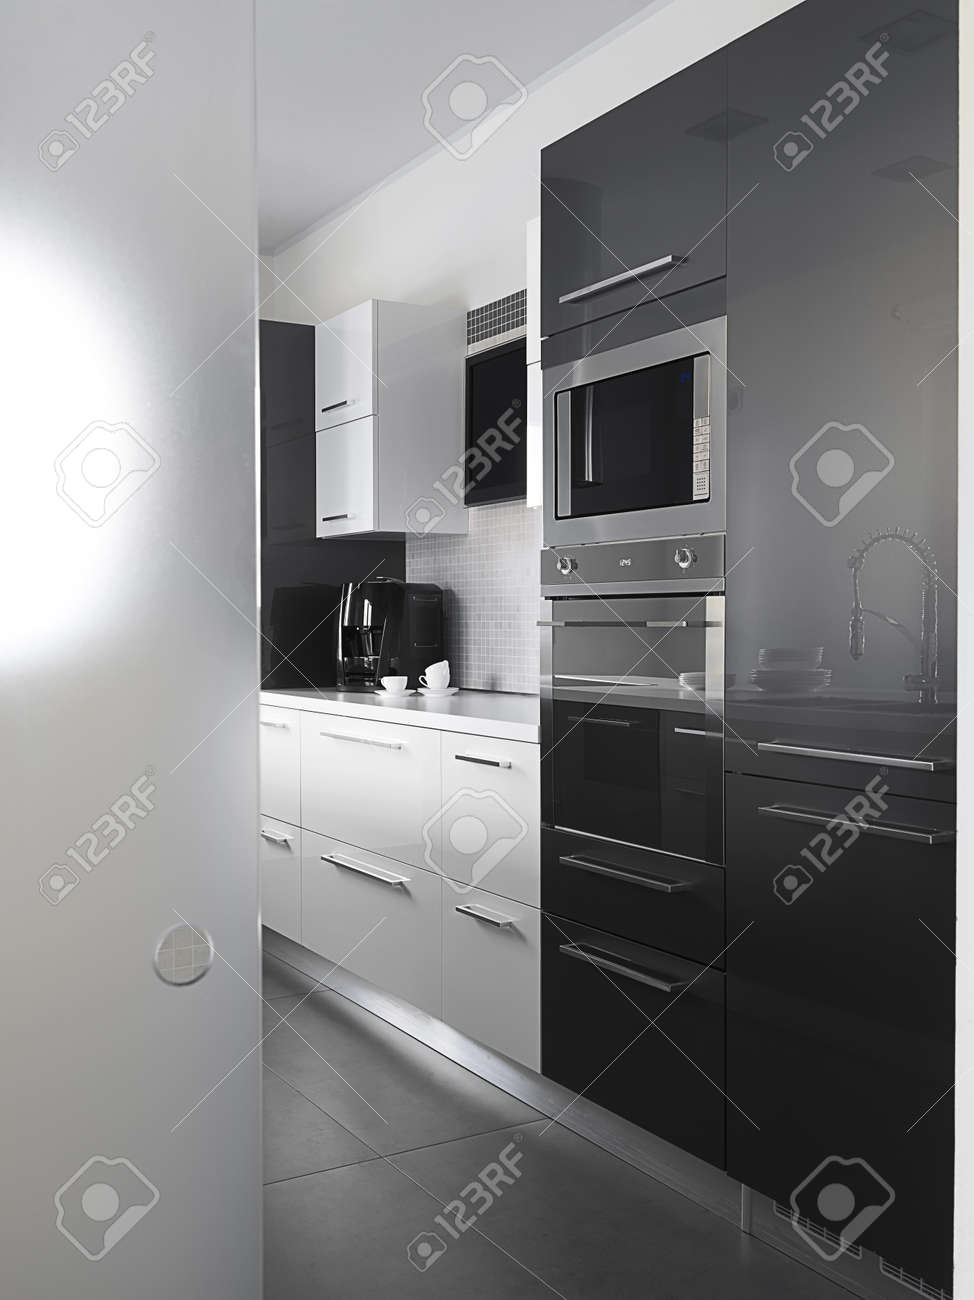 modern kitchen with gray tile floor and white wall Stock Photo - 14420912